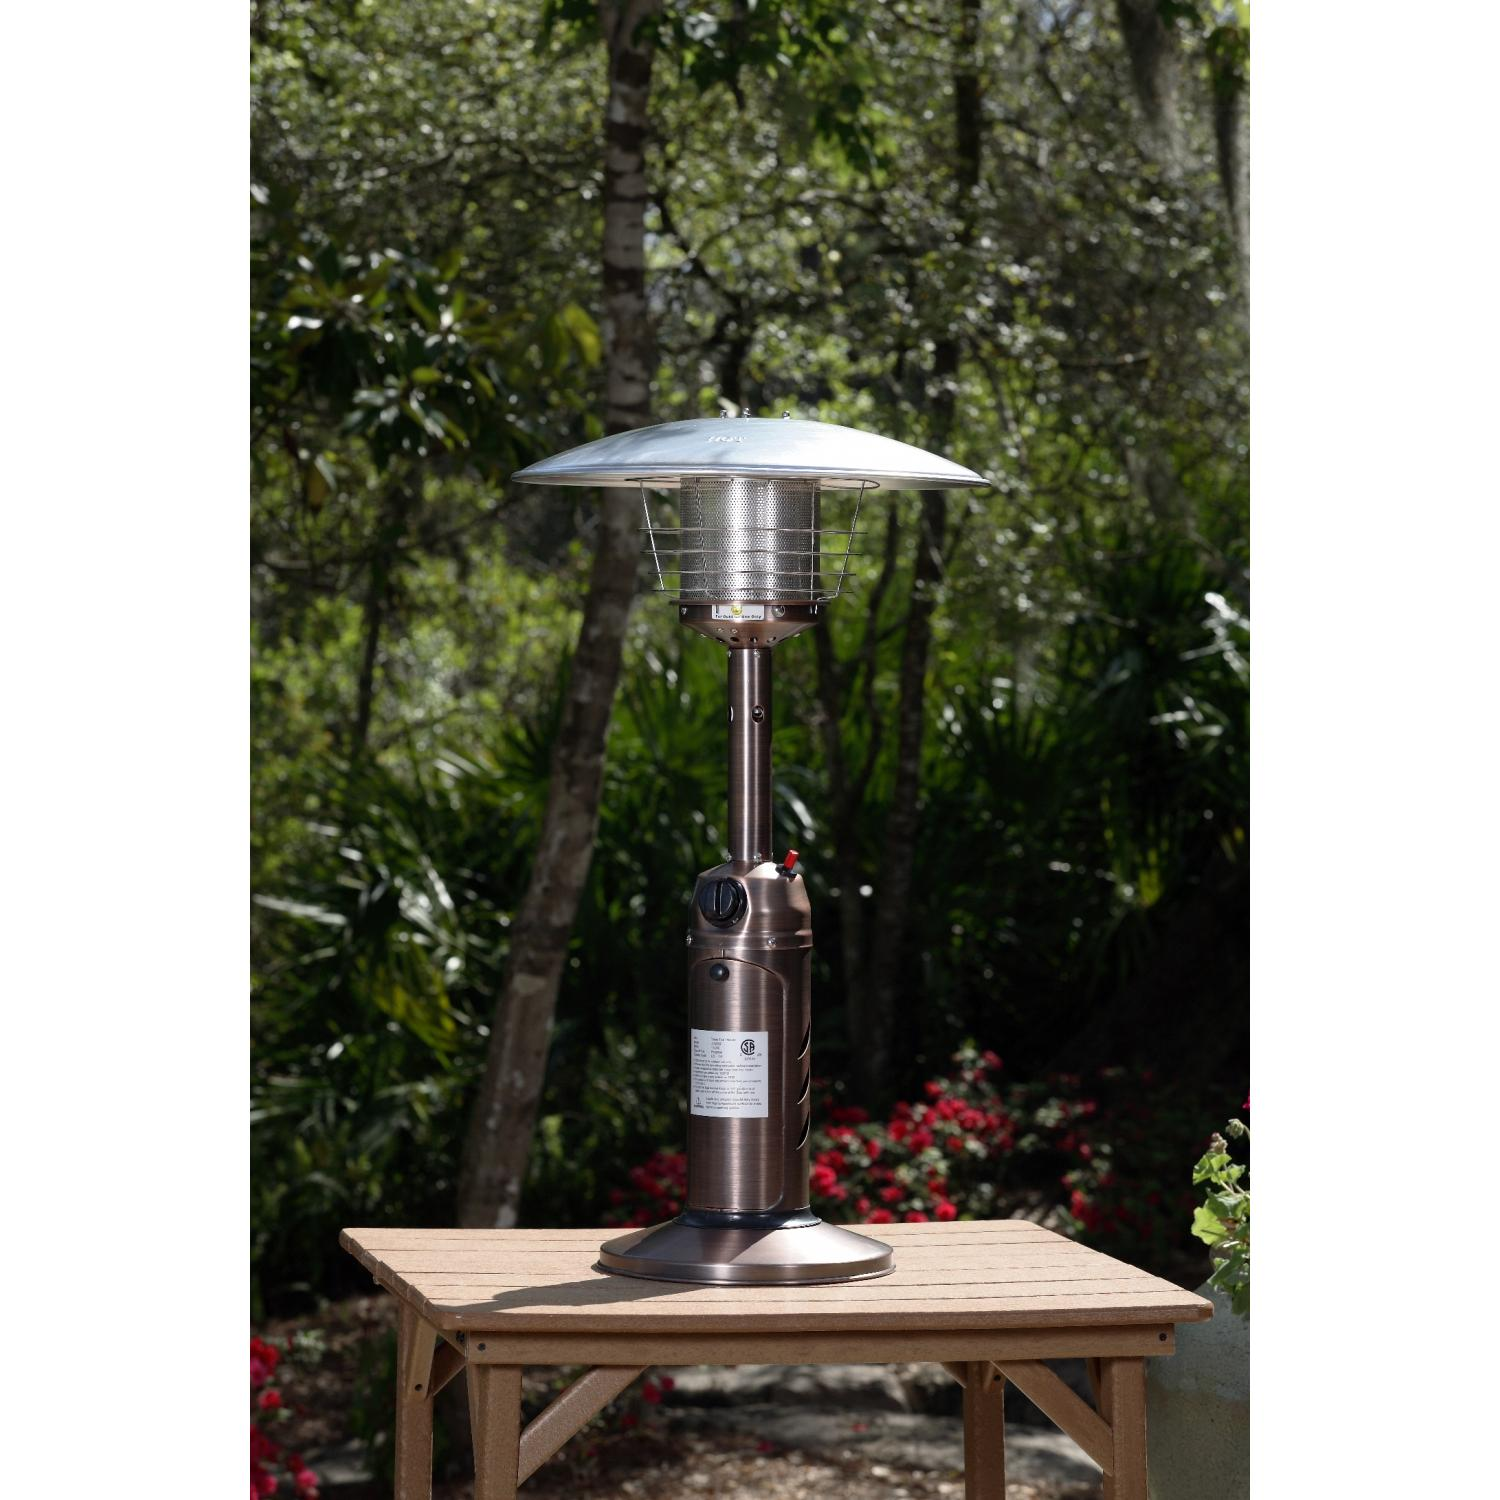 Fire Sense 10000 BTU Table Top Propane Patio Heater With Piezo Ignitor - Copper